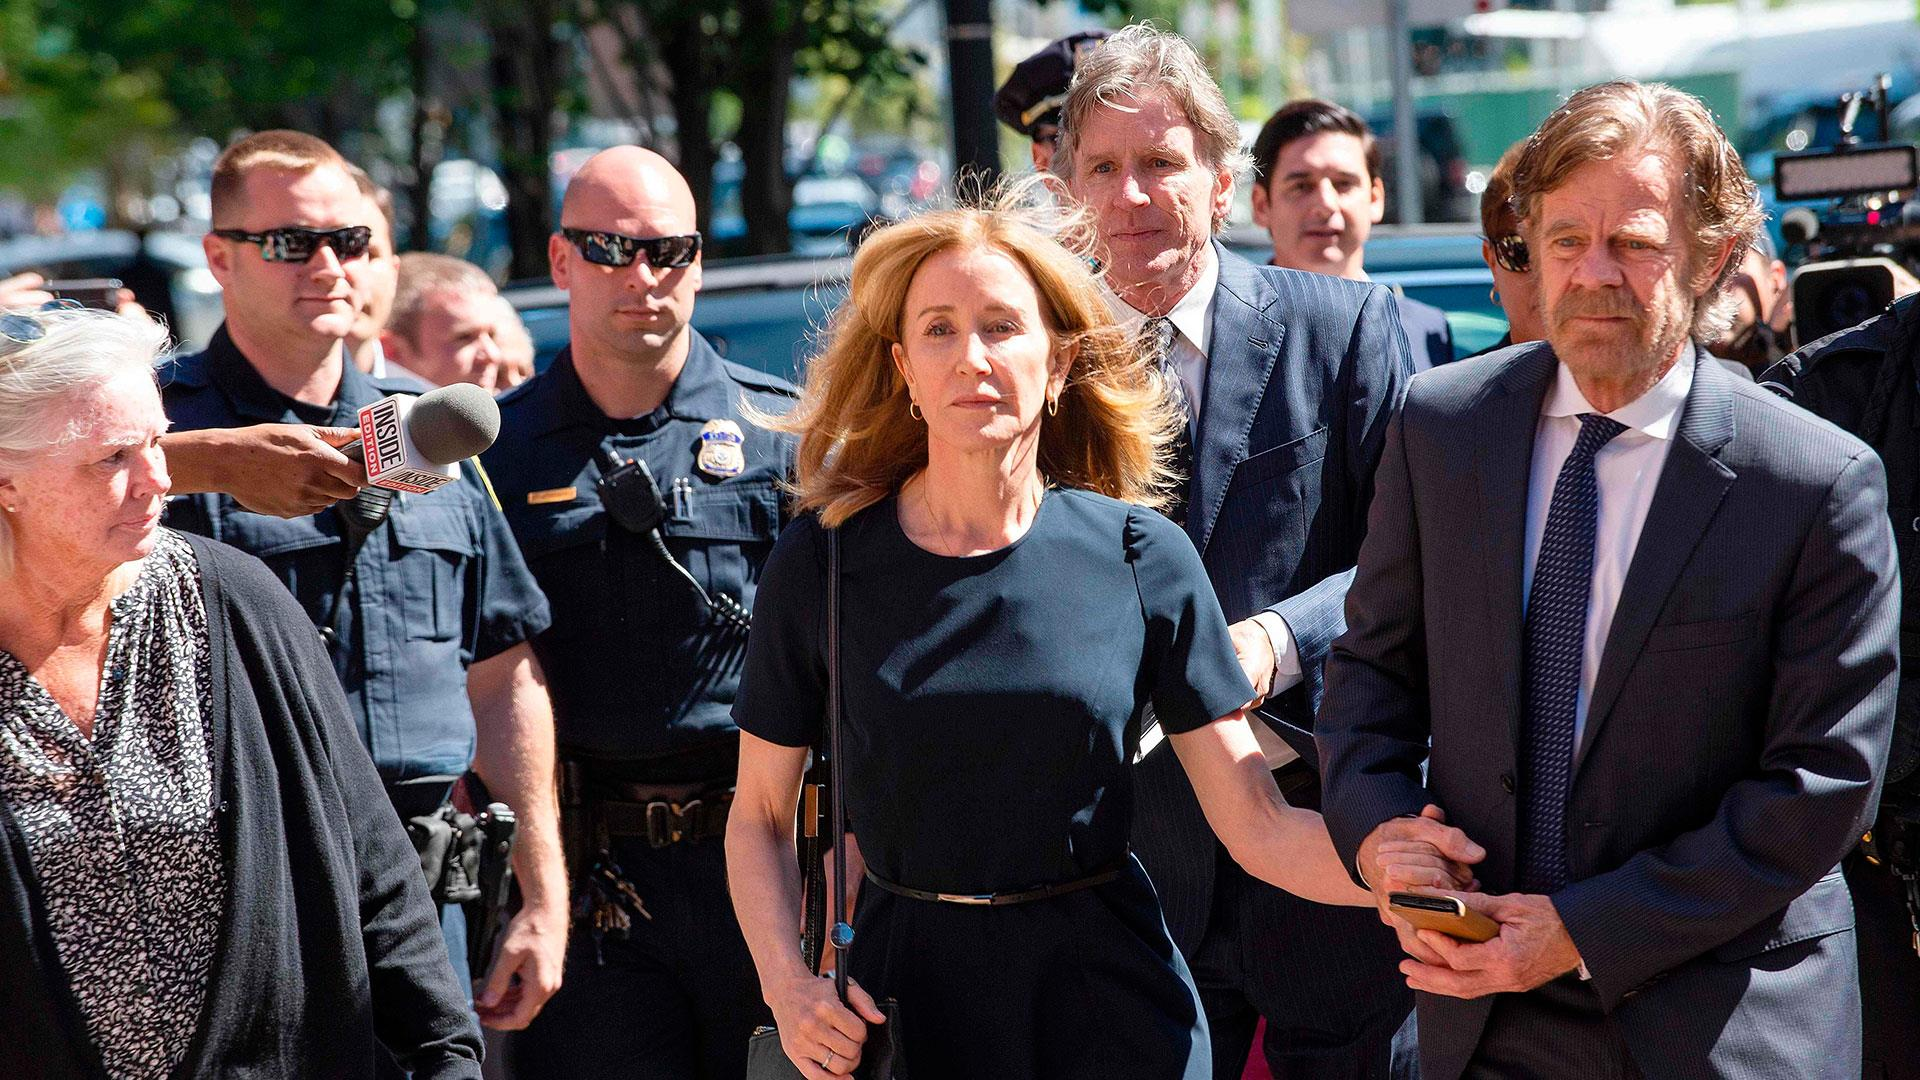 Felicity Huffman sentenced to 14 days in prison and community service